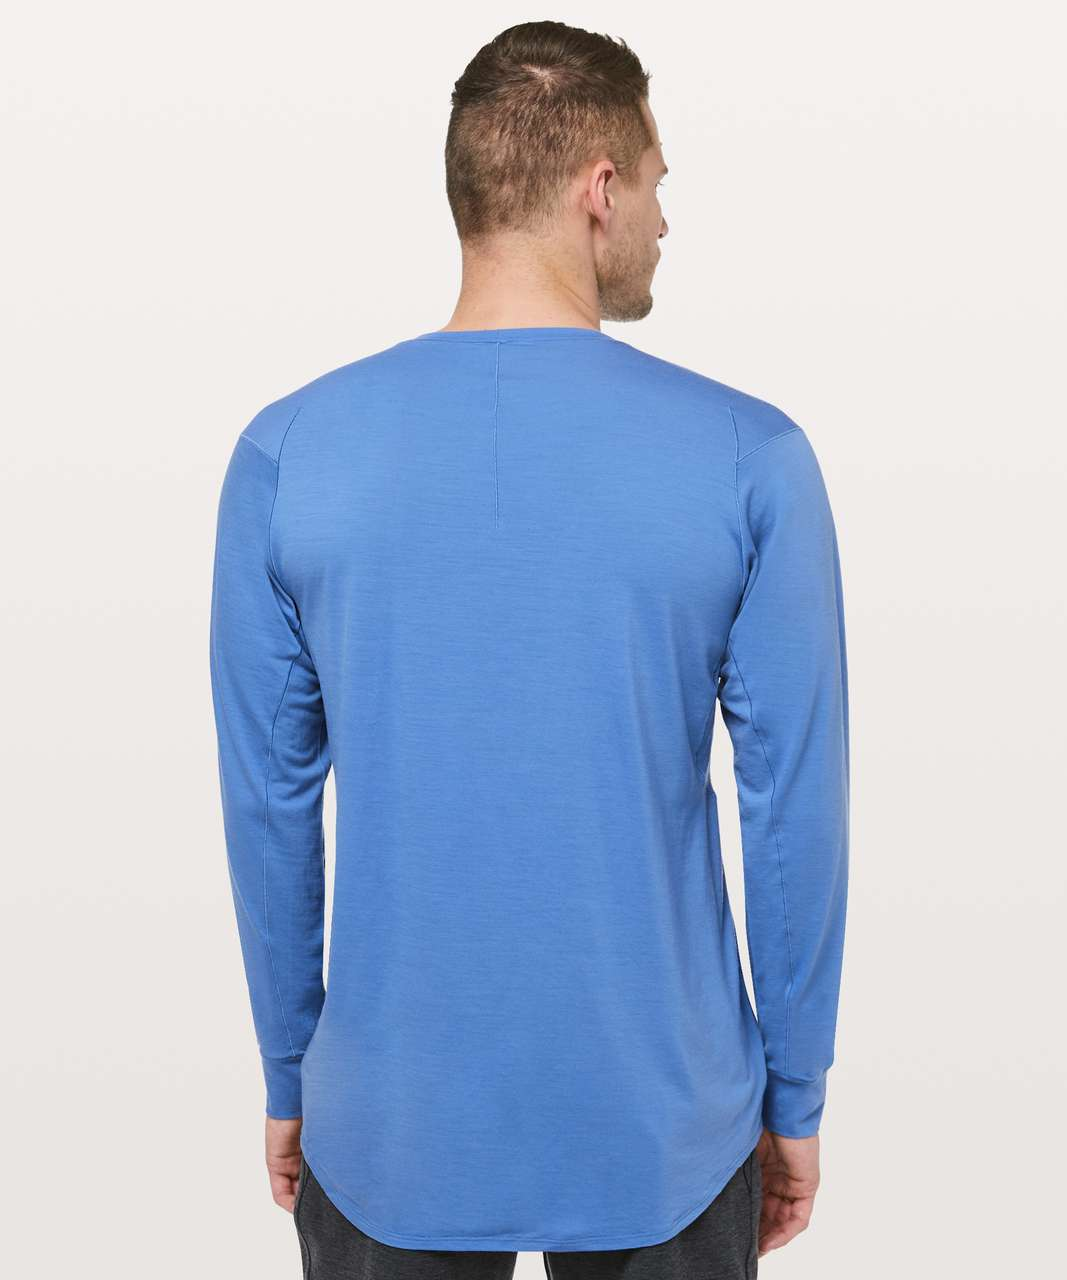 Lululemon Diffract Long Sleeve *lululemon Lab - Chromatic Blue